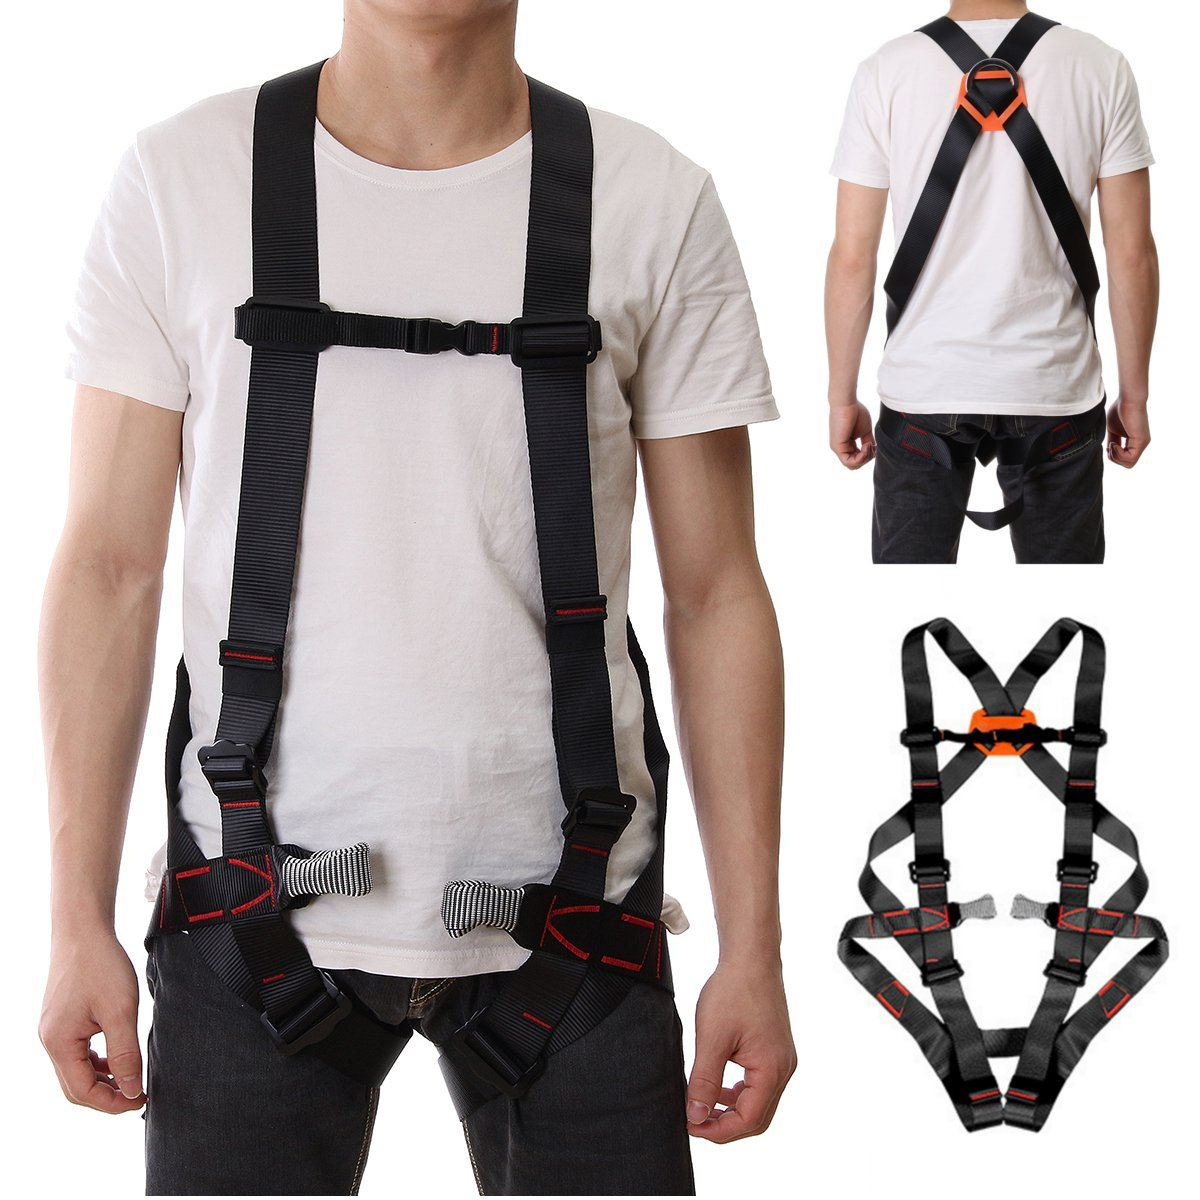 Hot Outdoor 800KG Climbing harnesses Safety Rappelling Belt Mountaineering Harnesses rock Seat Sitting Bust Protective Belts цена